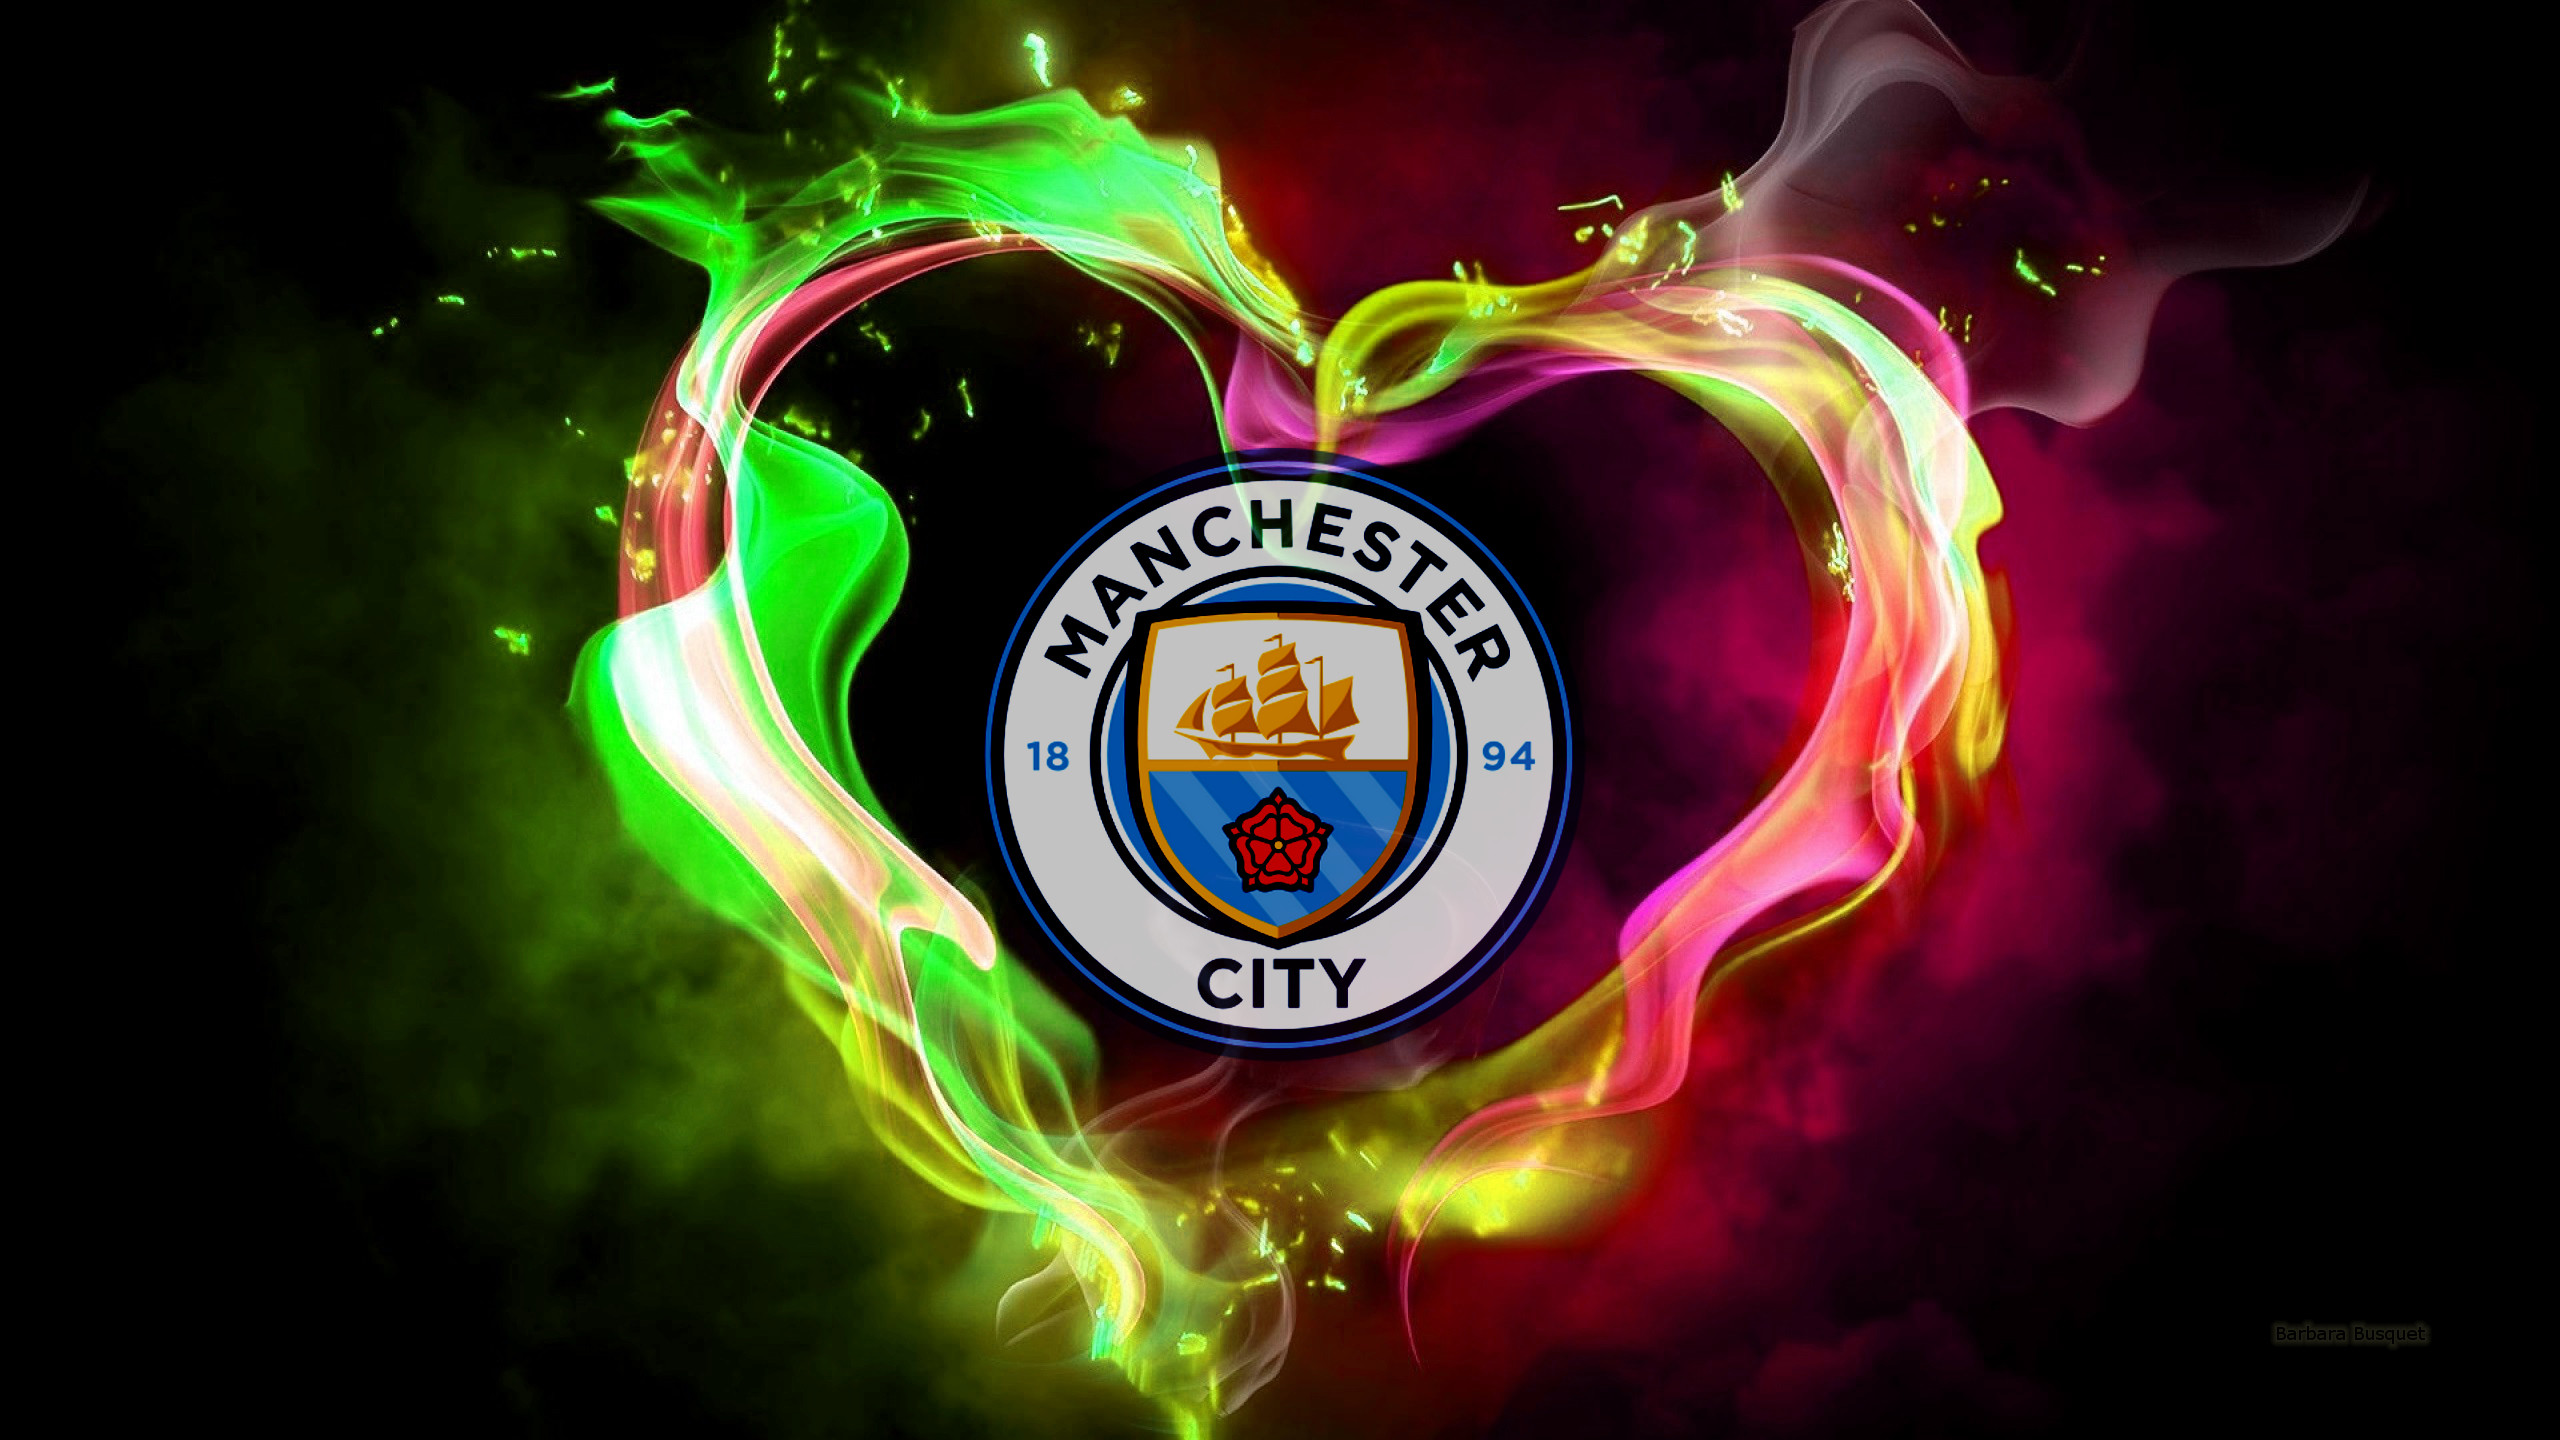 Manchester City Wallpaper - 2560x1440 - Download HD ...